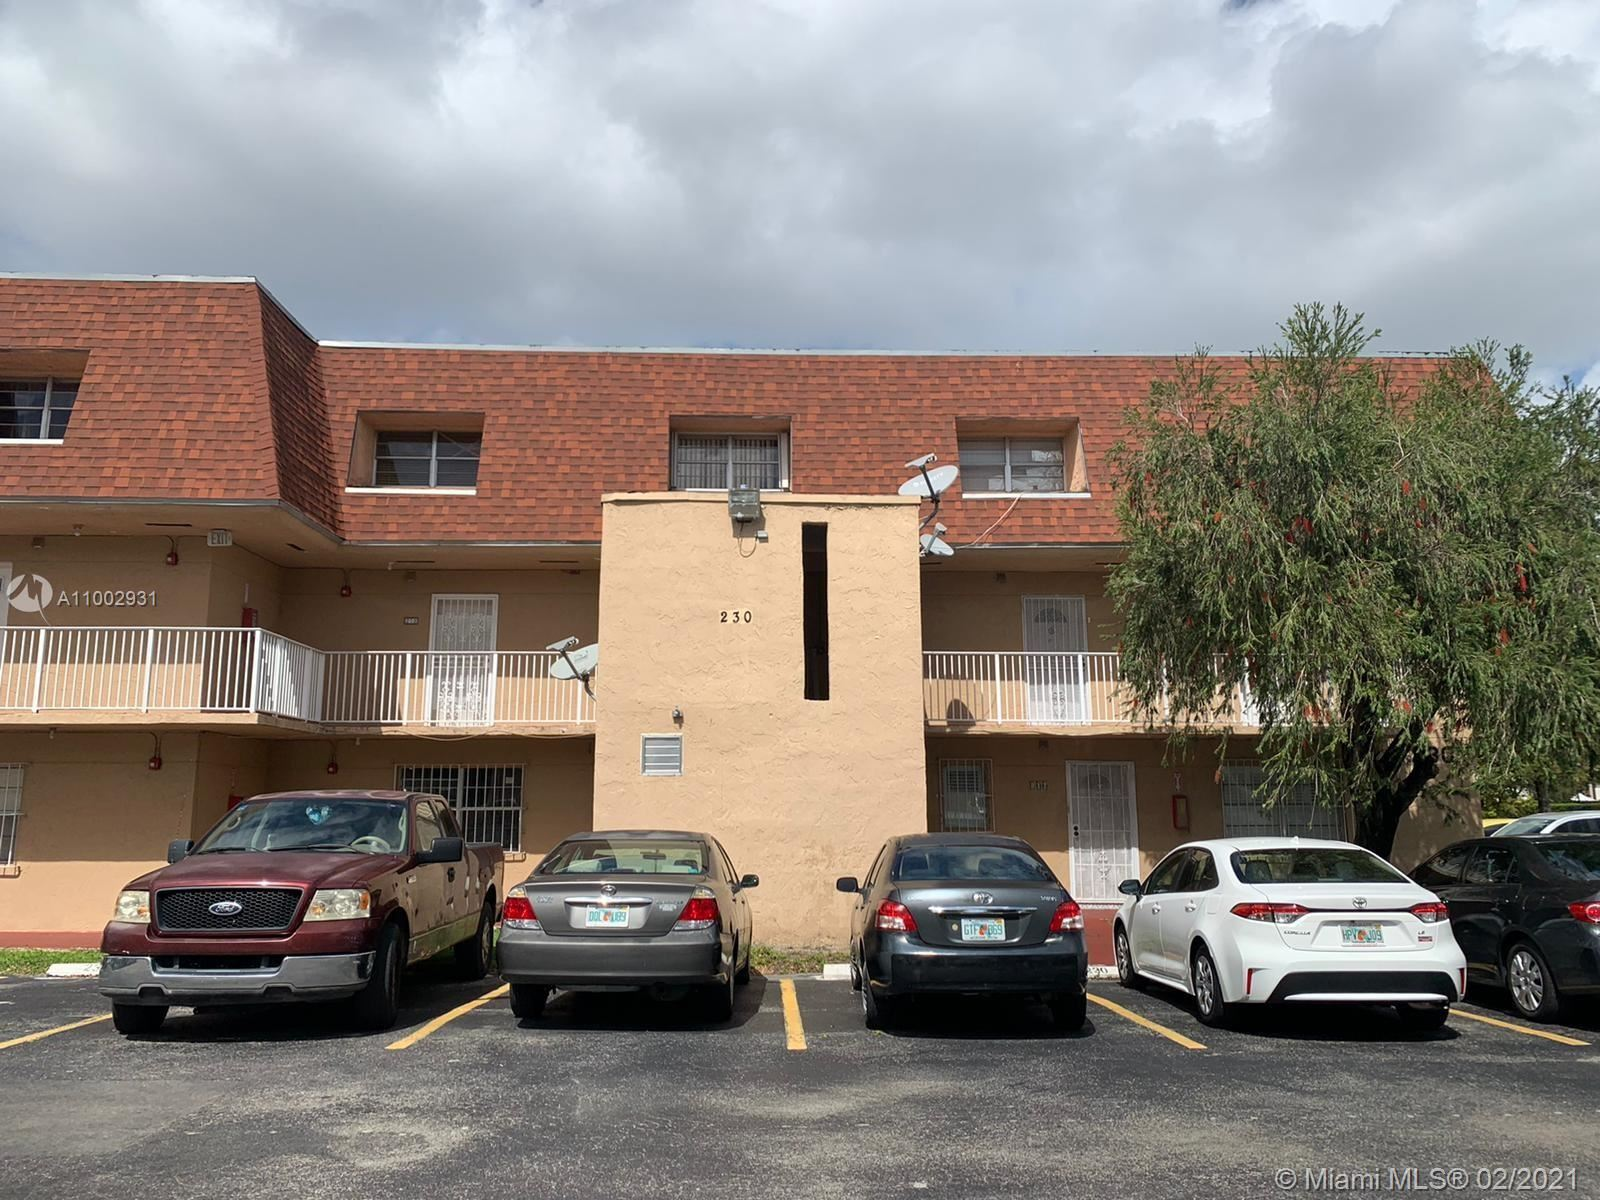 230 NW 107th Avenue #210, Miami, FL 33172 - #: A11002931